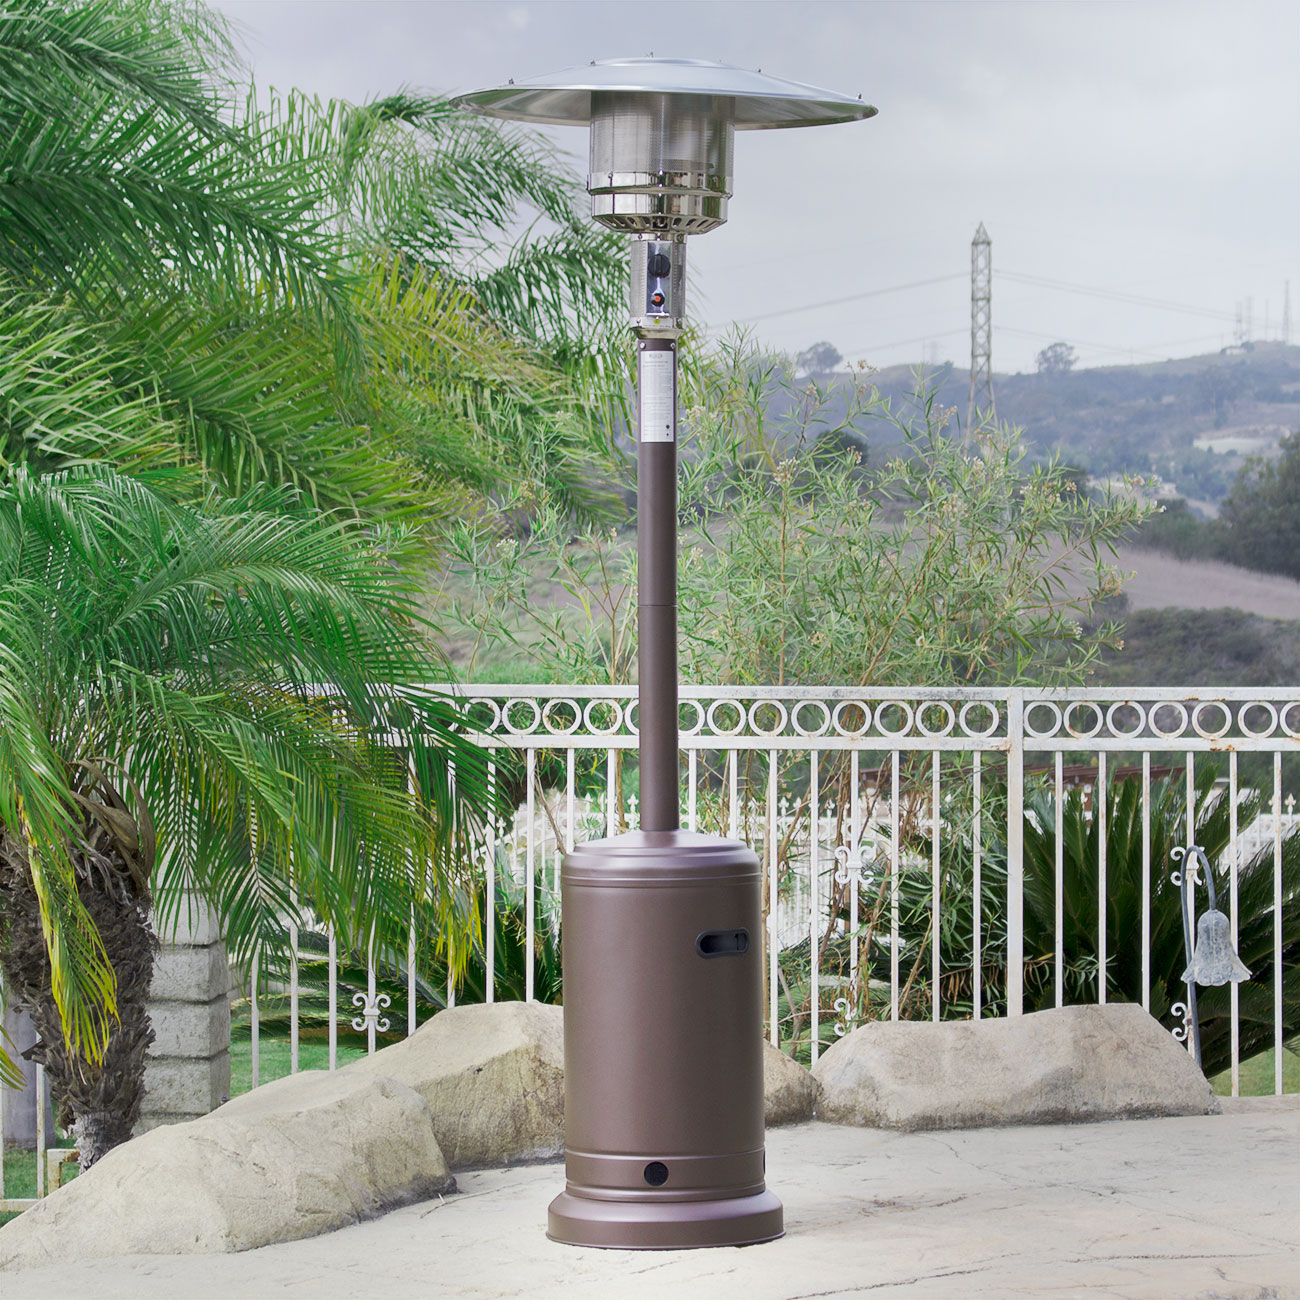 Image Is Loading 48 000 BTU Outdoor Propane Patio Heater LP